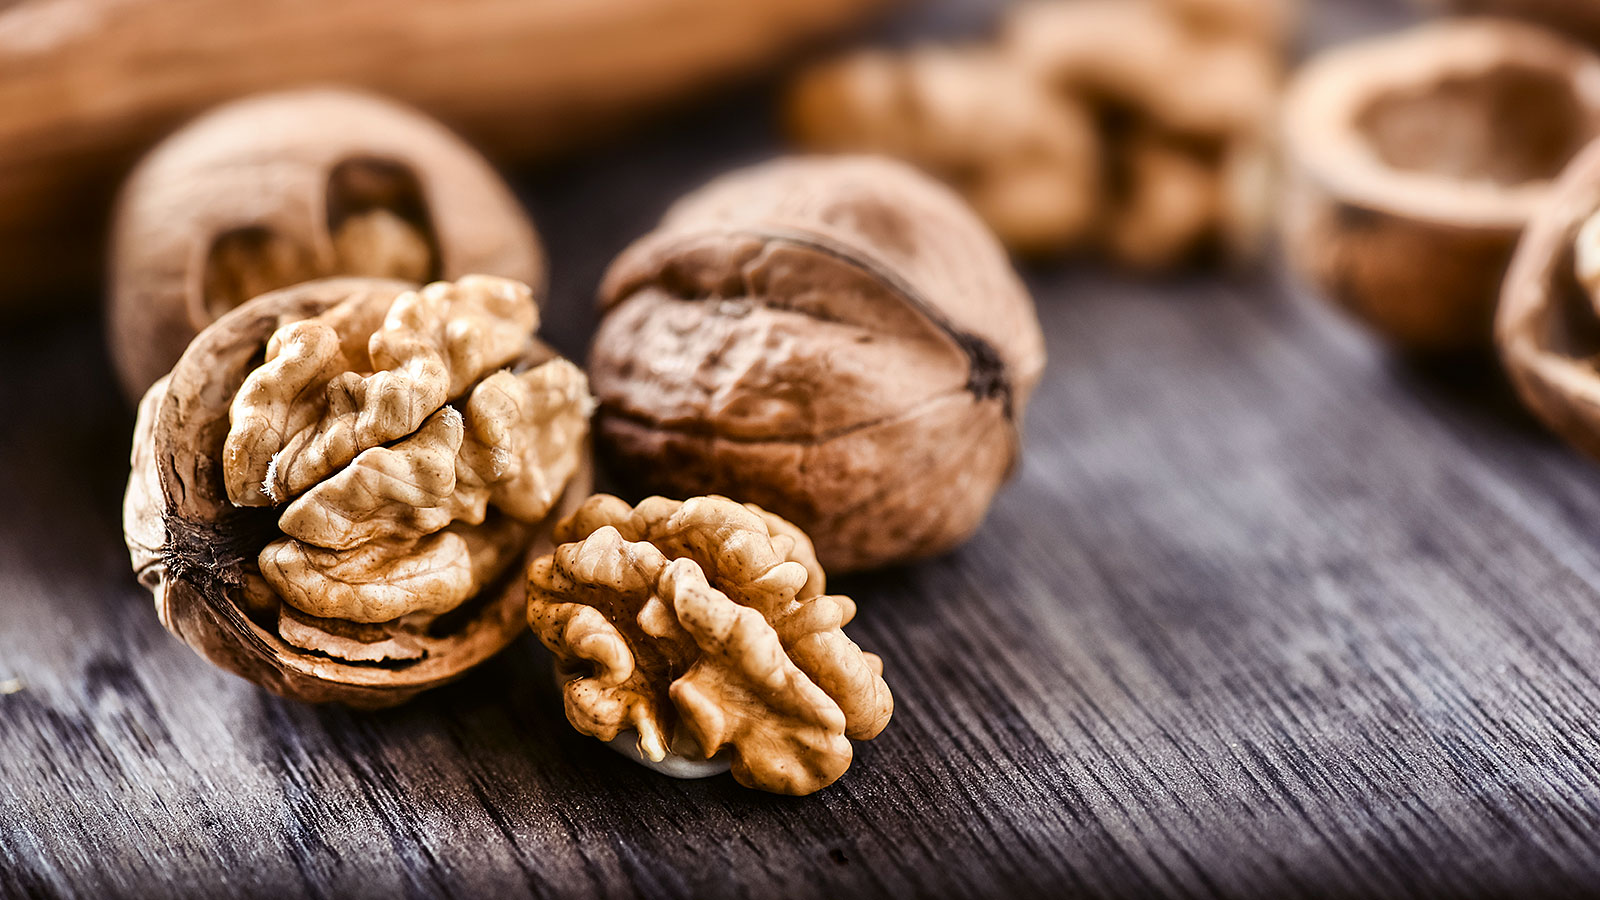 Eating walnuts has some major health benefits